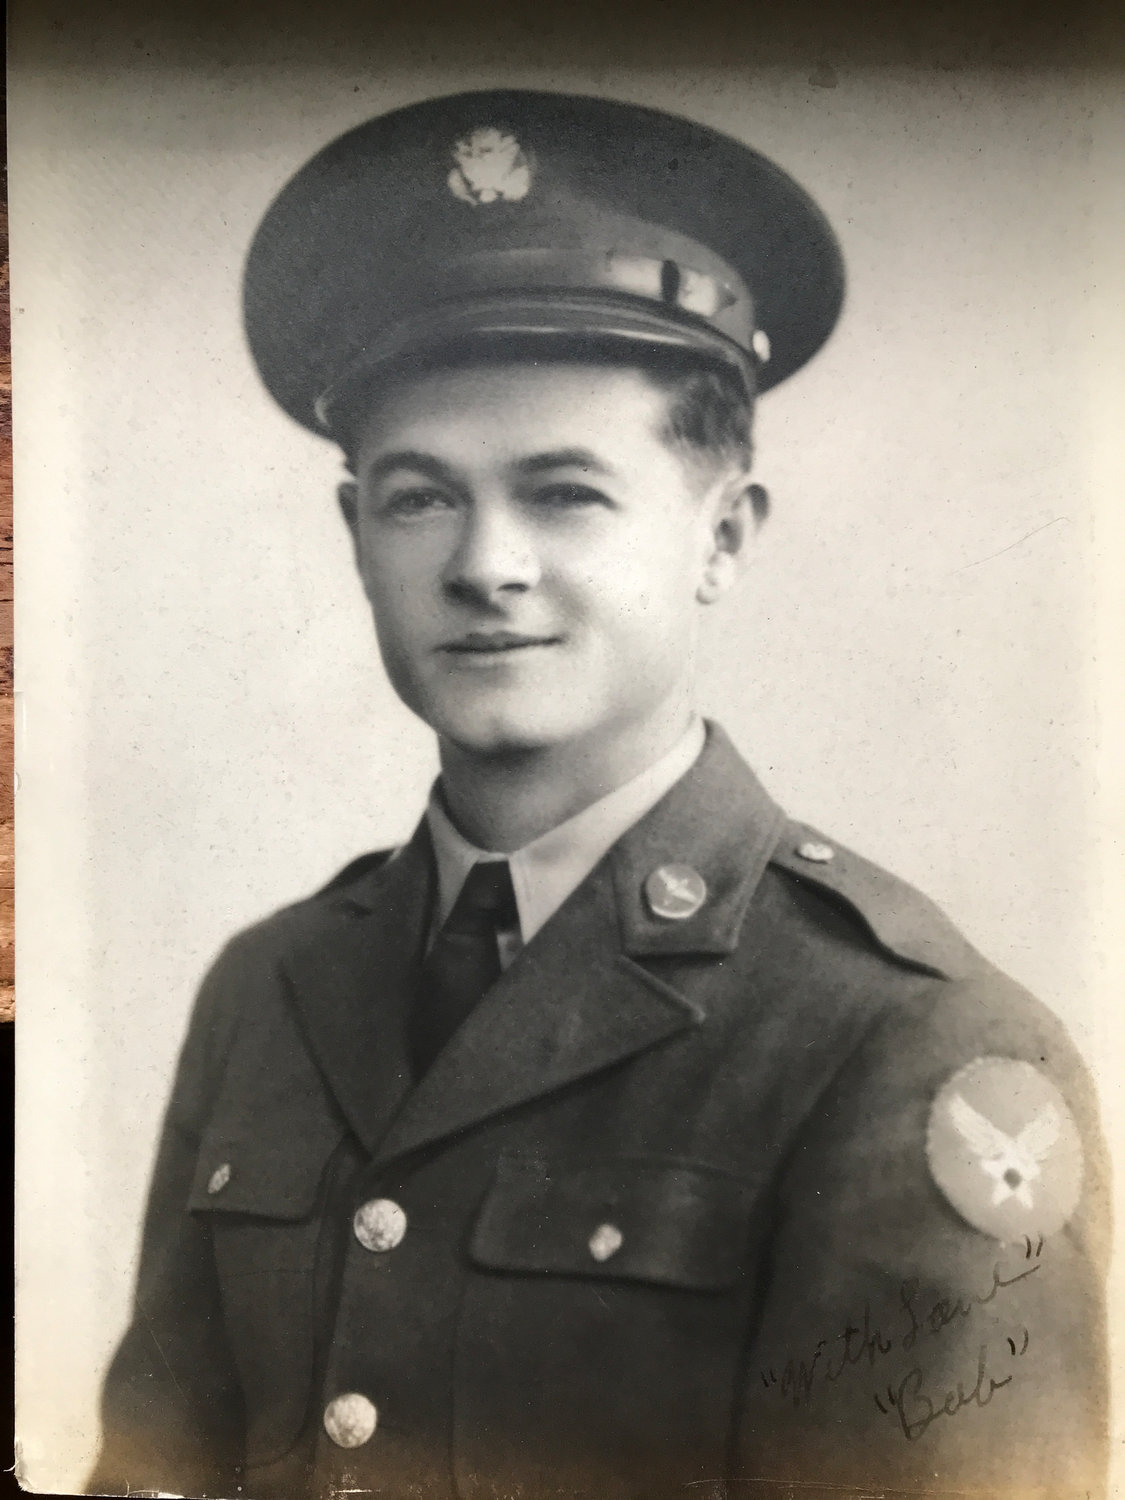 Bob Hester in uniform during World War II.